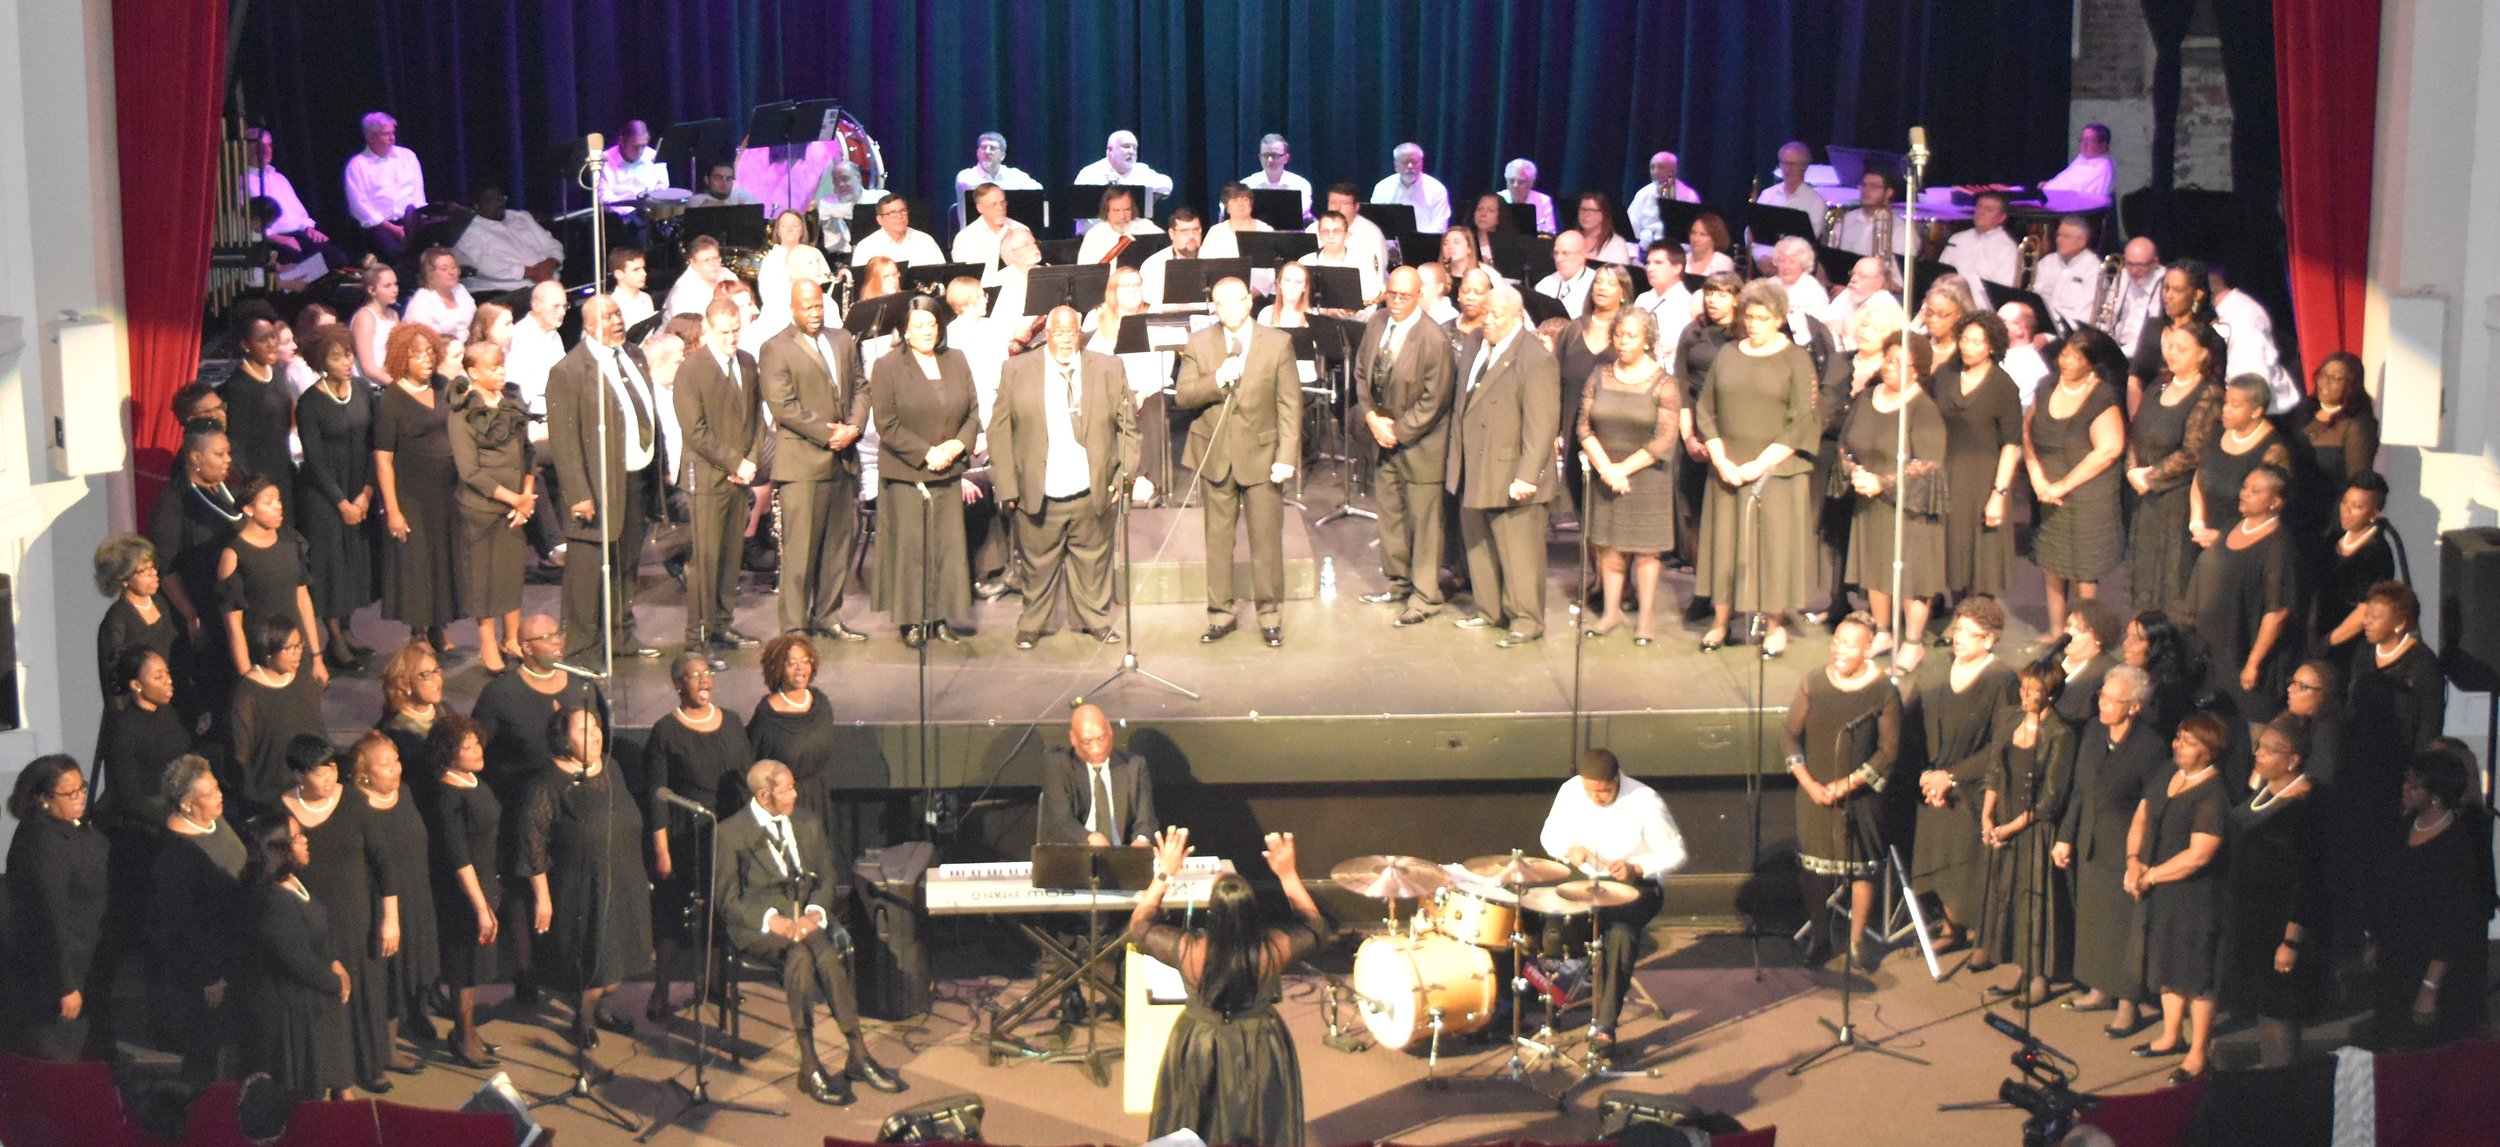 """02/20/20 7:30pm Rome City Auditorium    """"A Wing and a Prayer II""""   NW GA Winds with Rome's Own 60-voice Gospel Choir perform songs of inspiration and unity.   Free Admission"""